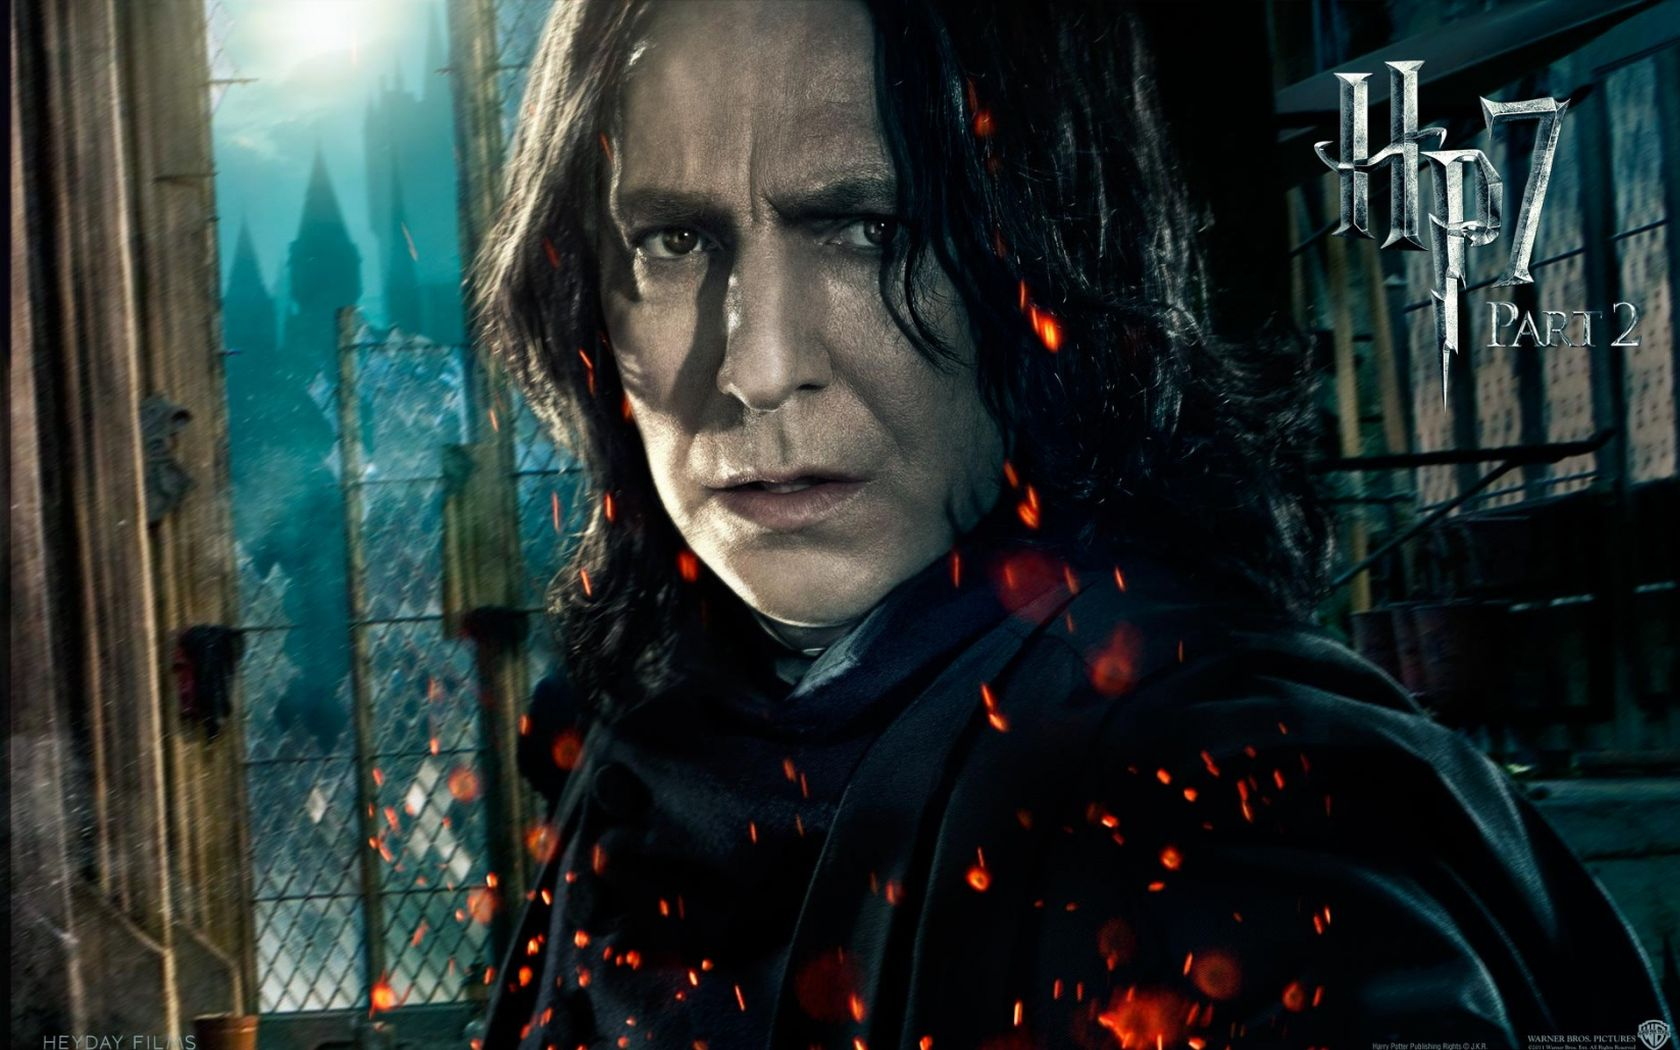 harry_potter_and_the_deathly_hallows_part_2_snape-wallpaper-1680x1050.jpg